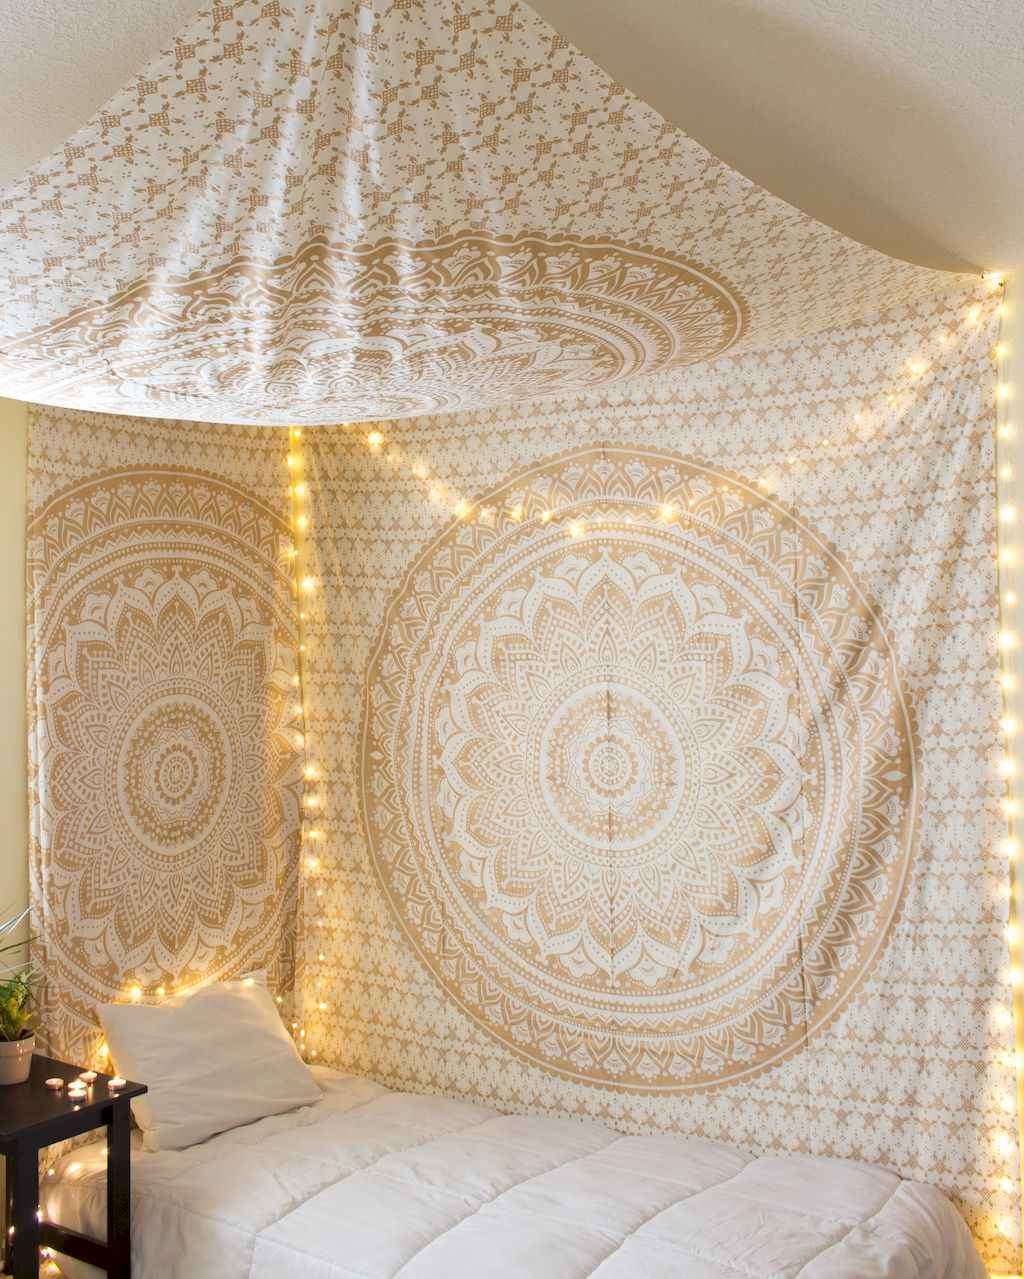 Clever college apartment decorating ideas on a budget (37)